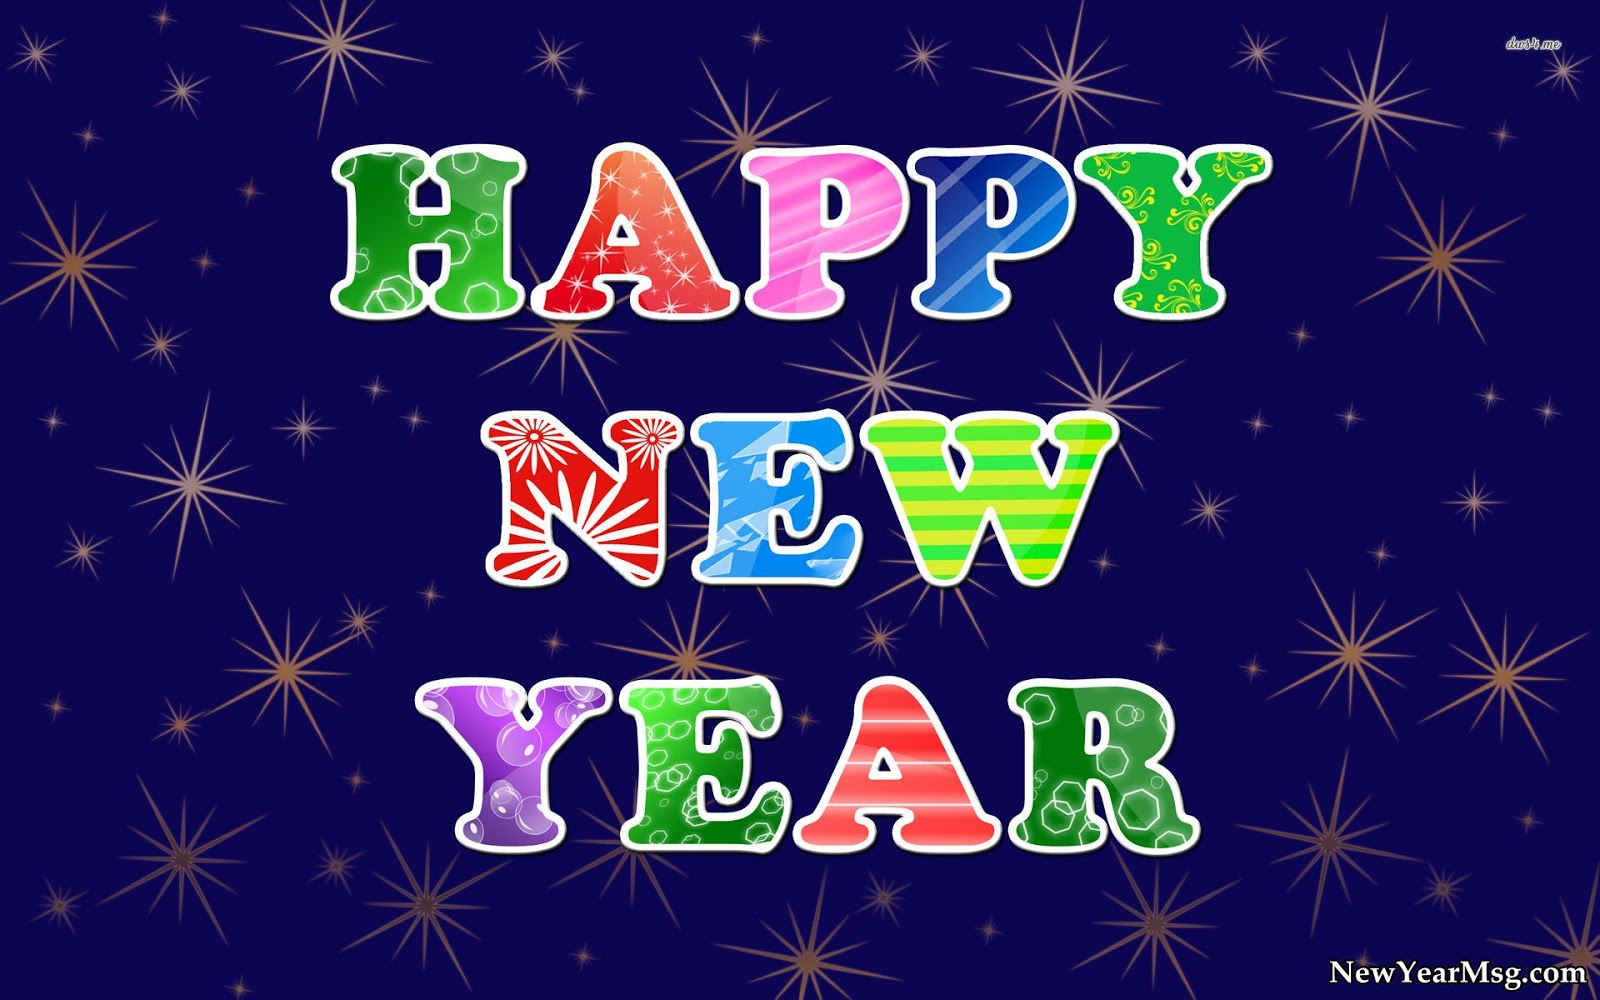 May This Year Brings All The Desired Success And Happiness In Your Life  That You Can Cherish Always. Wish You A Successful And Prosperous 2018.